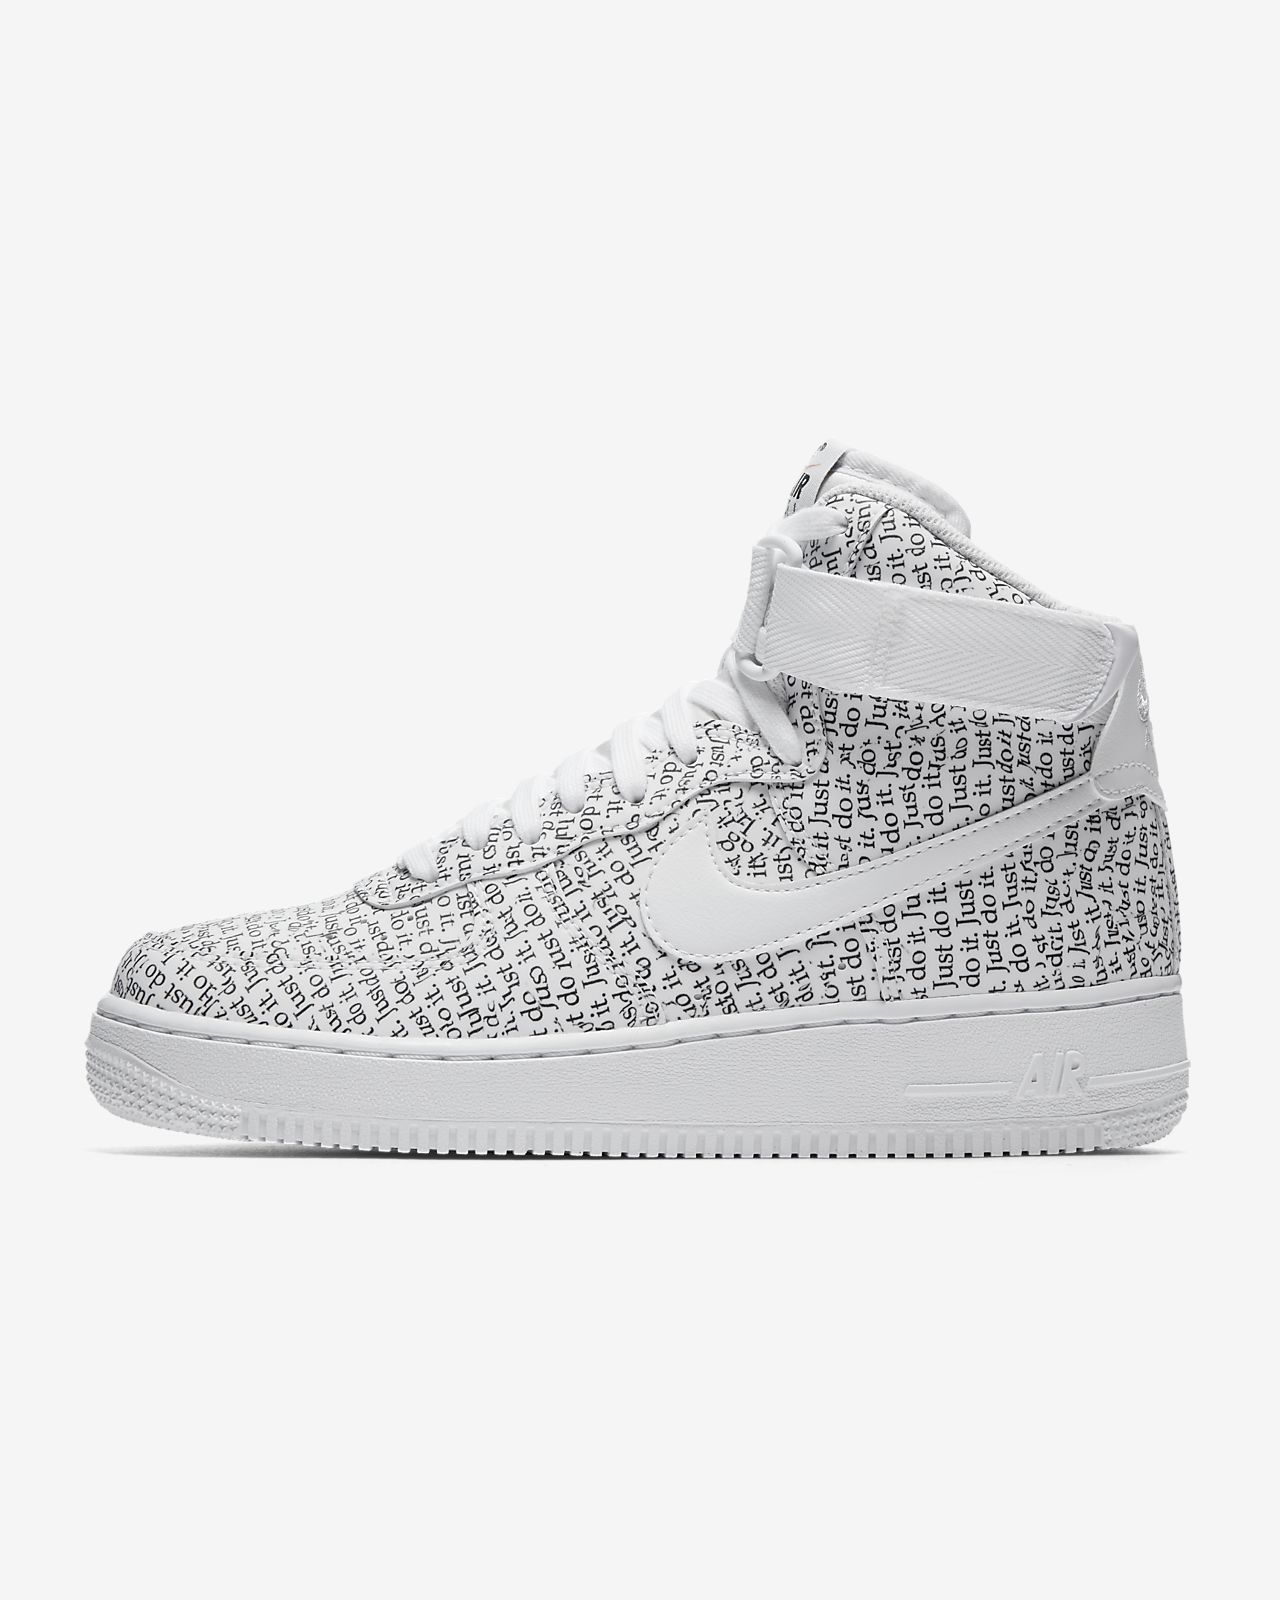 Nike Air Force 1 High LX Women's Shoe. So do we LOVE these